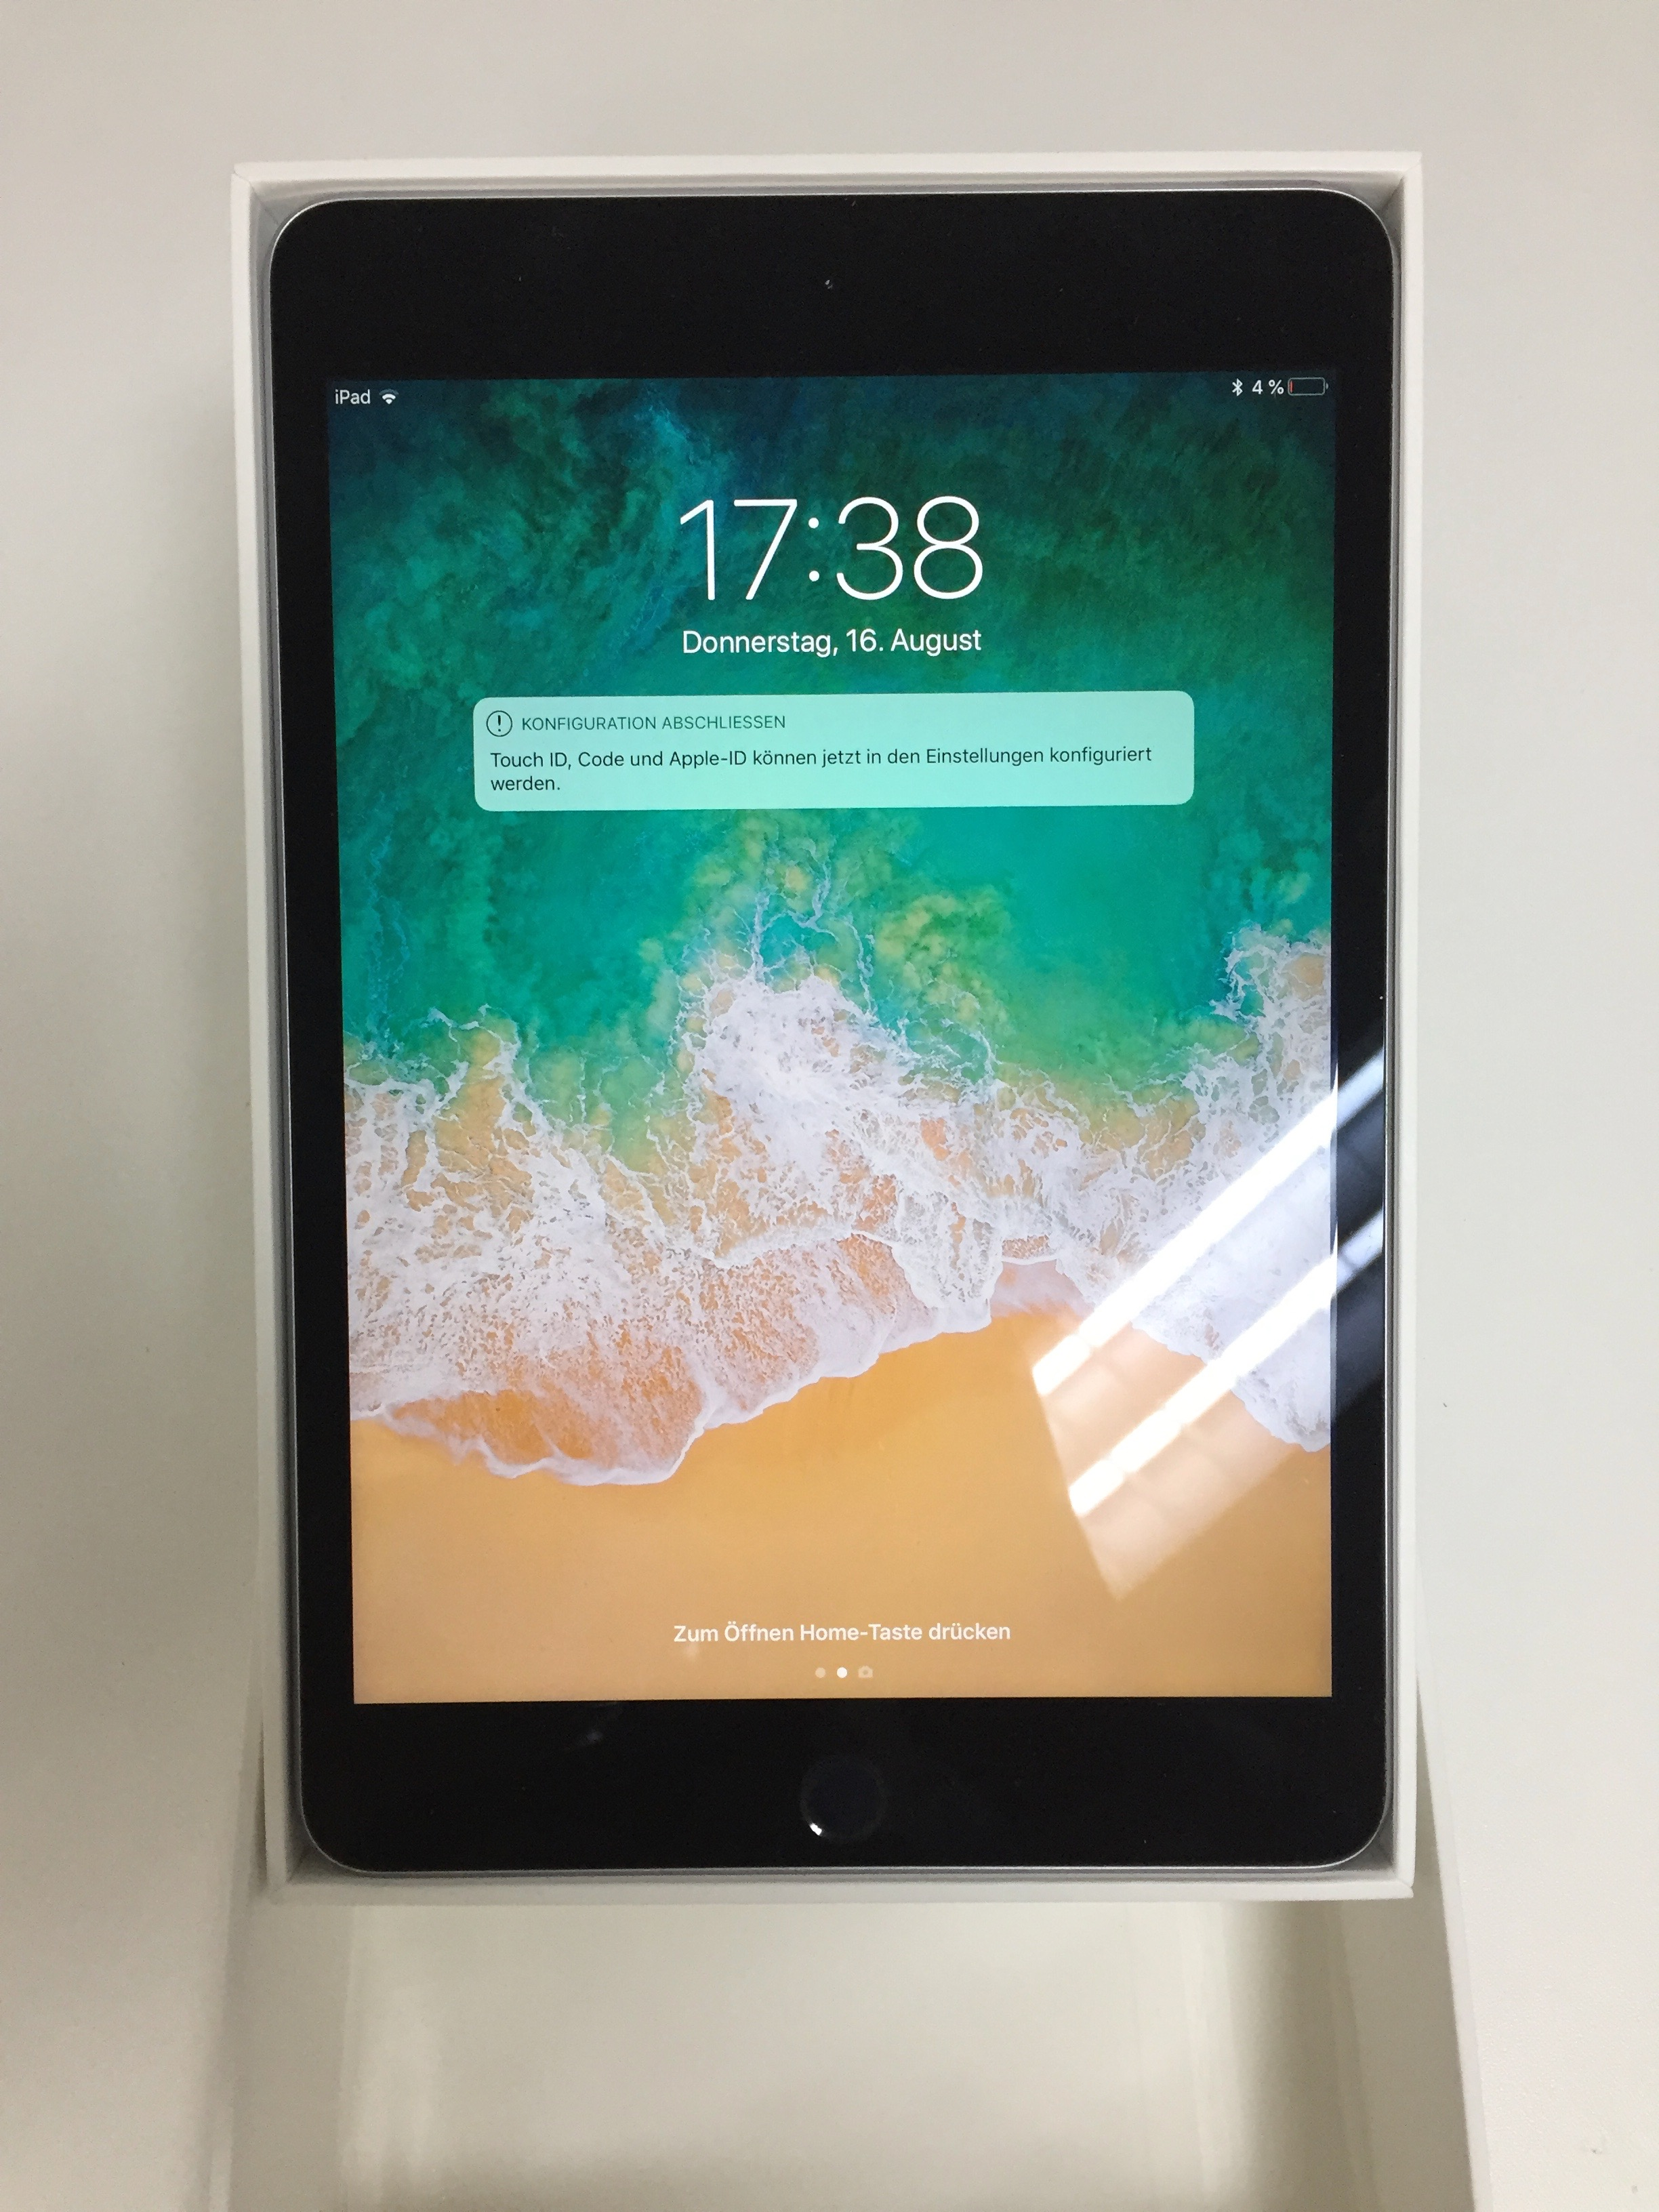 iPad mini 4 Wi-Fi 16GB, 16GB, Space gray, Bild 2